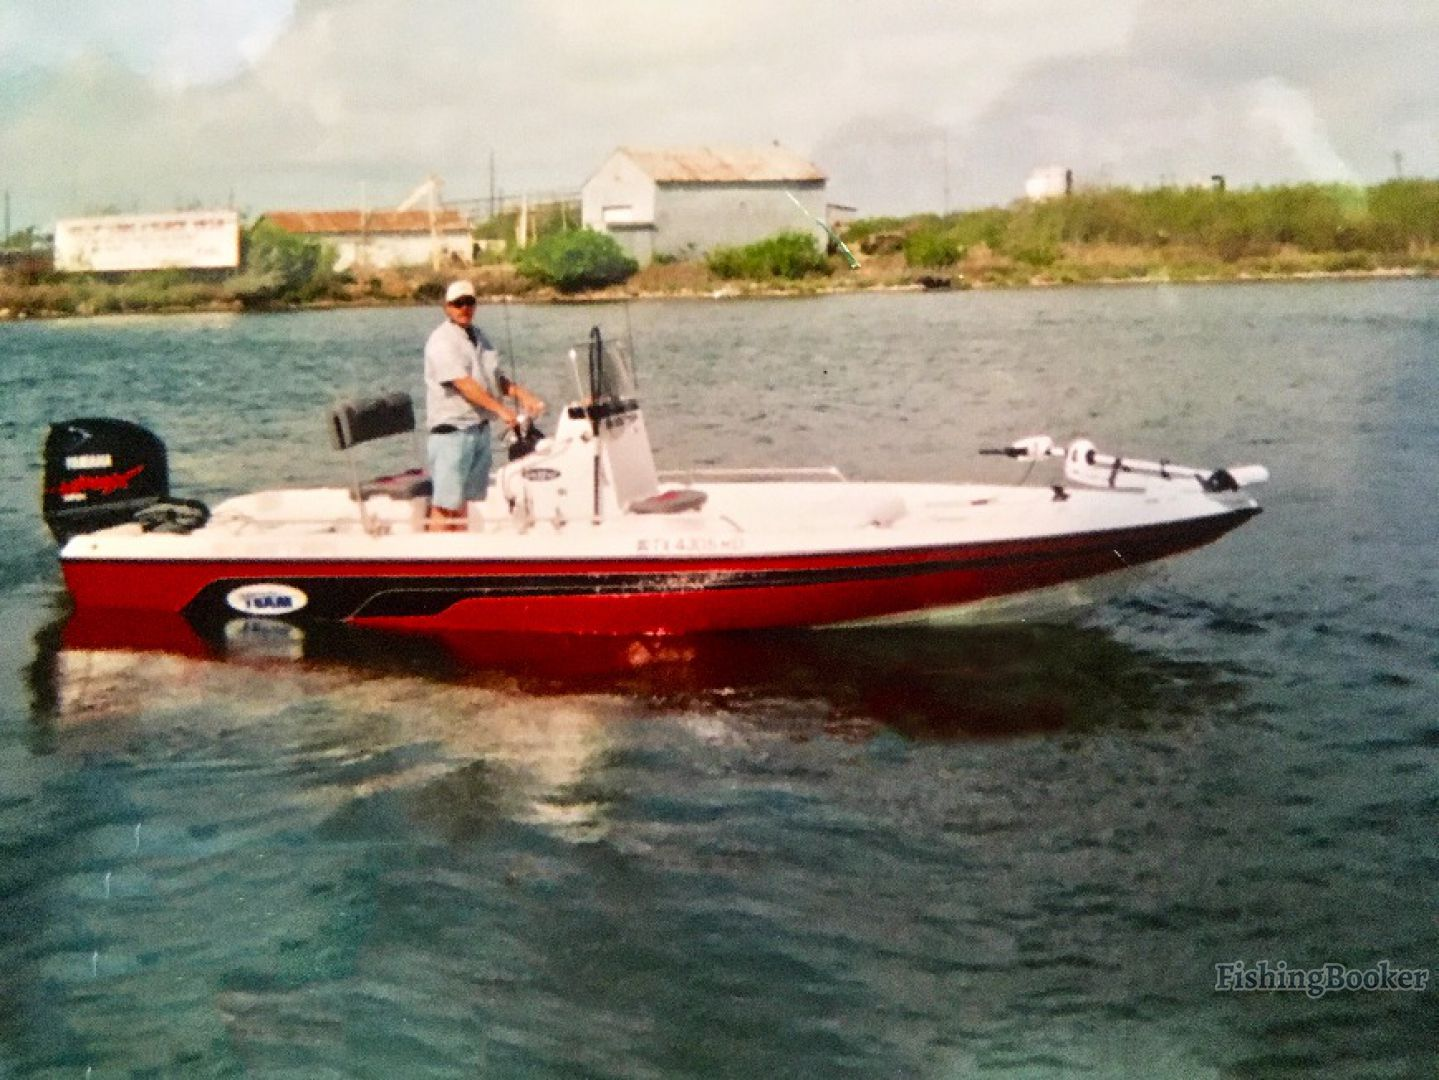 Wing rod guide saltwater bay rockport texas for Rockport fishing guides